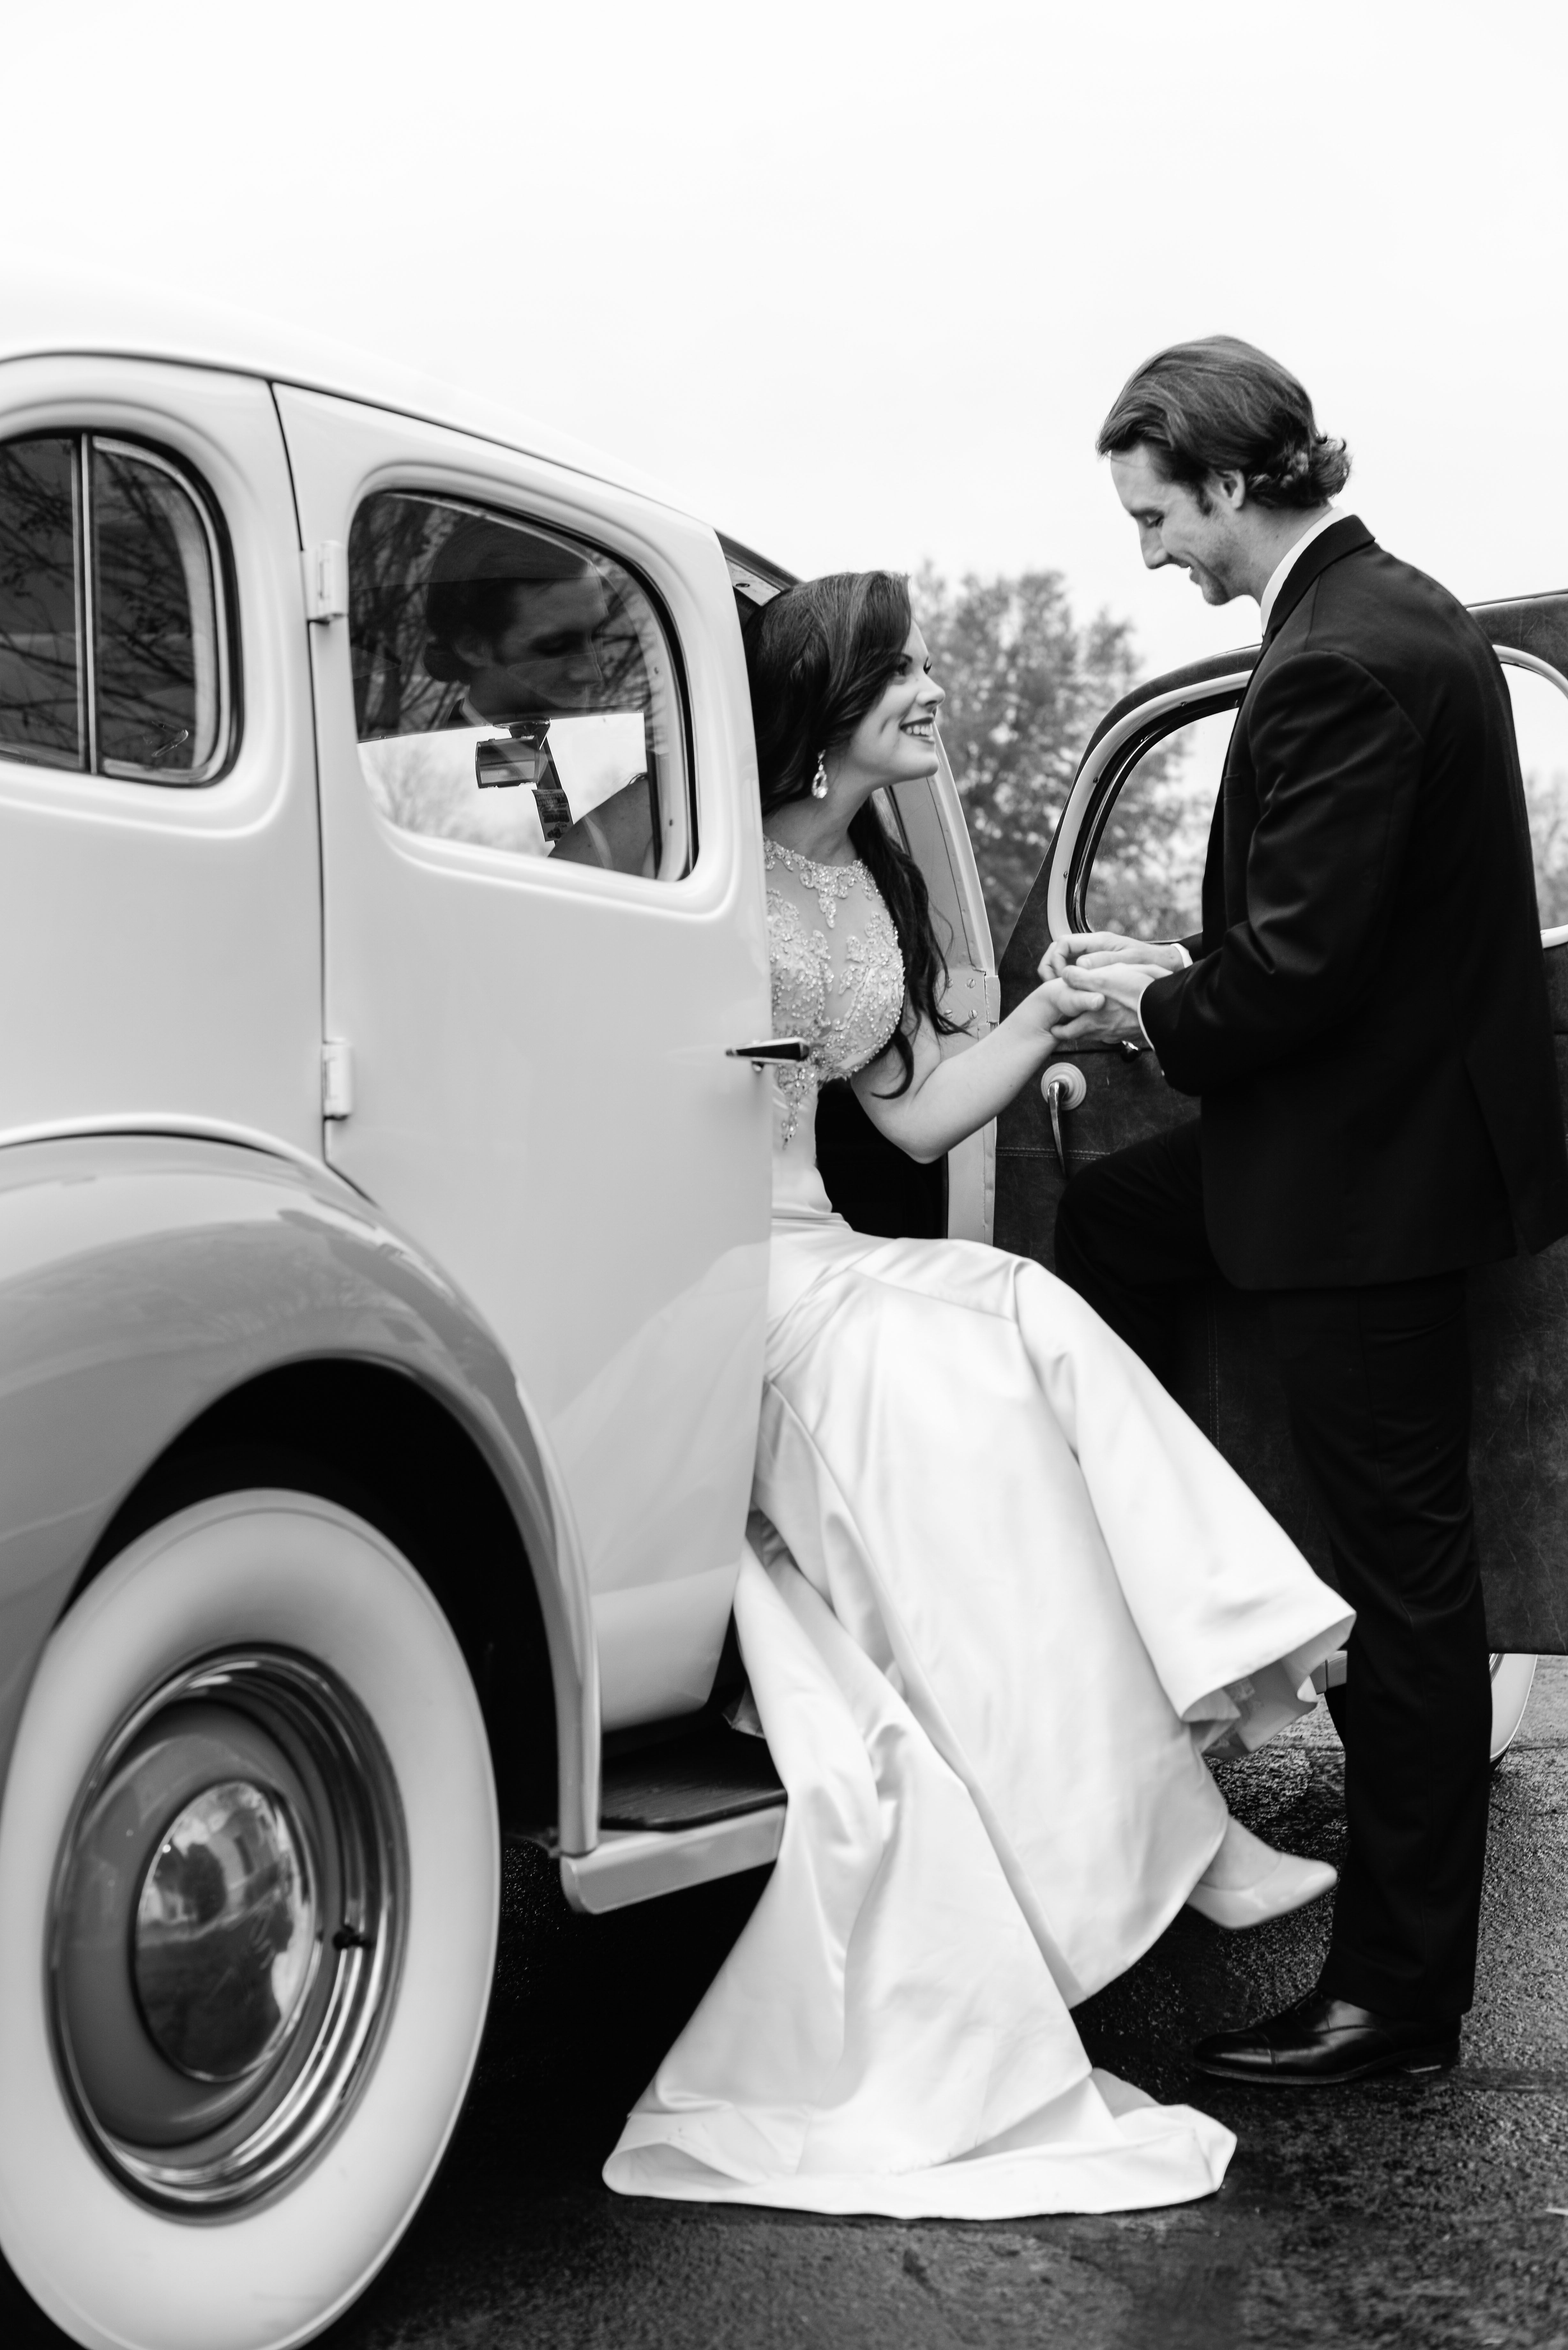 Bride + groom leaving in a vintage car from the Wedding Reception ...